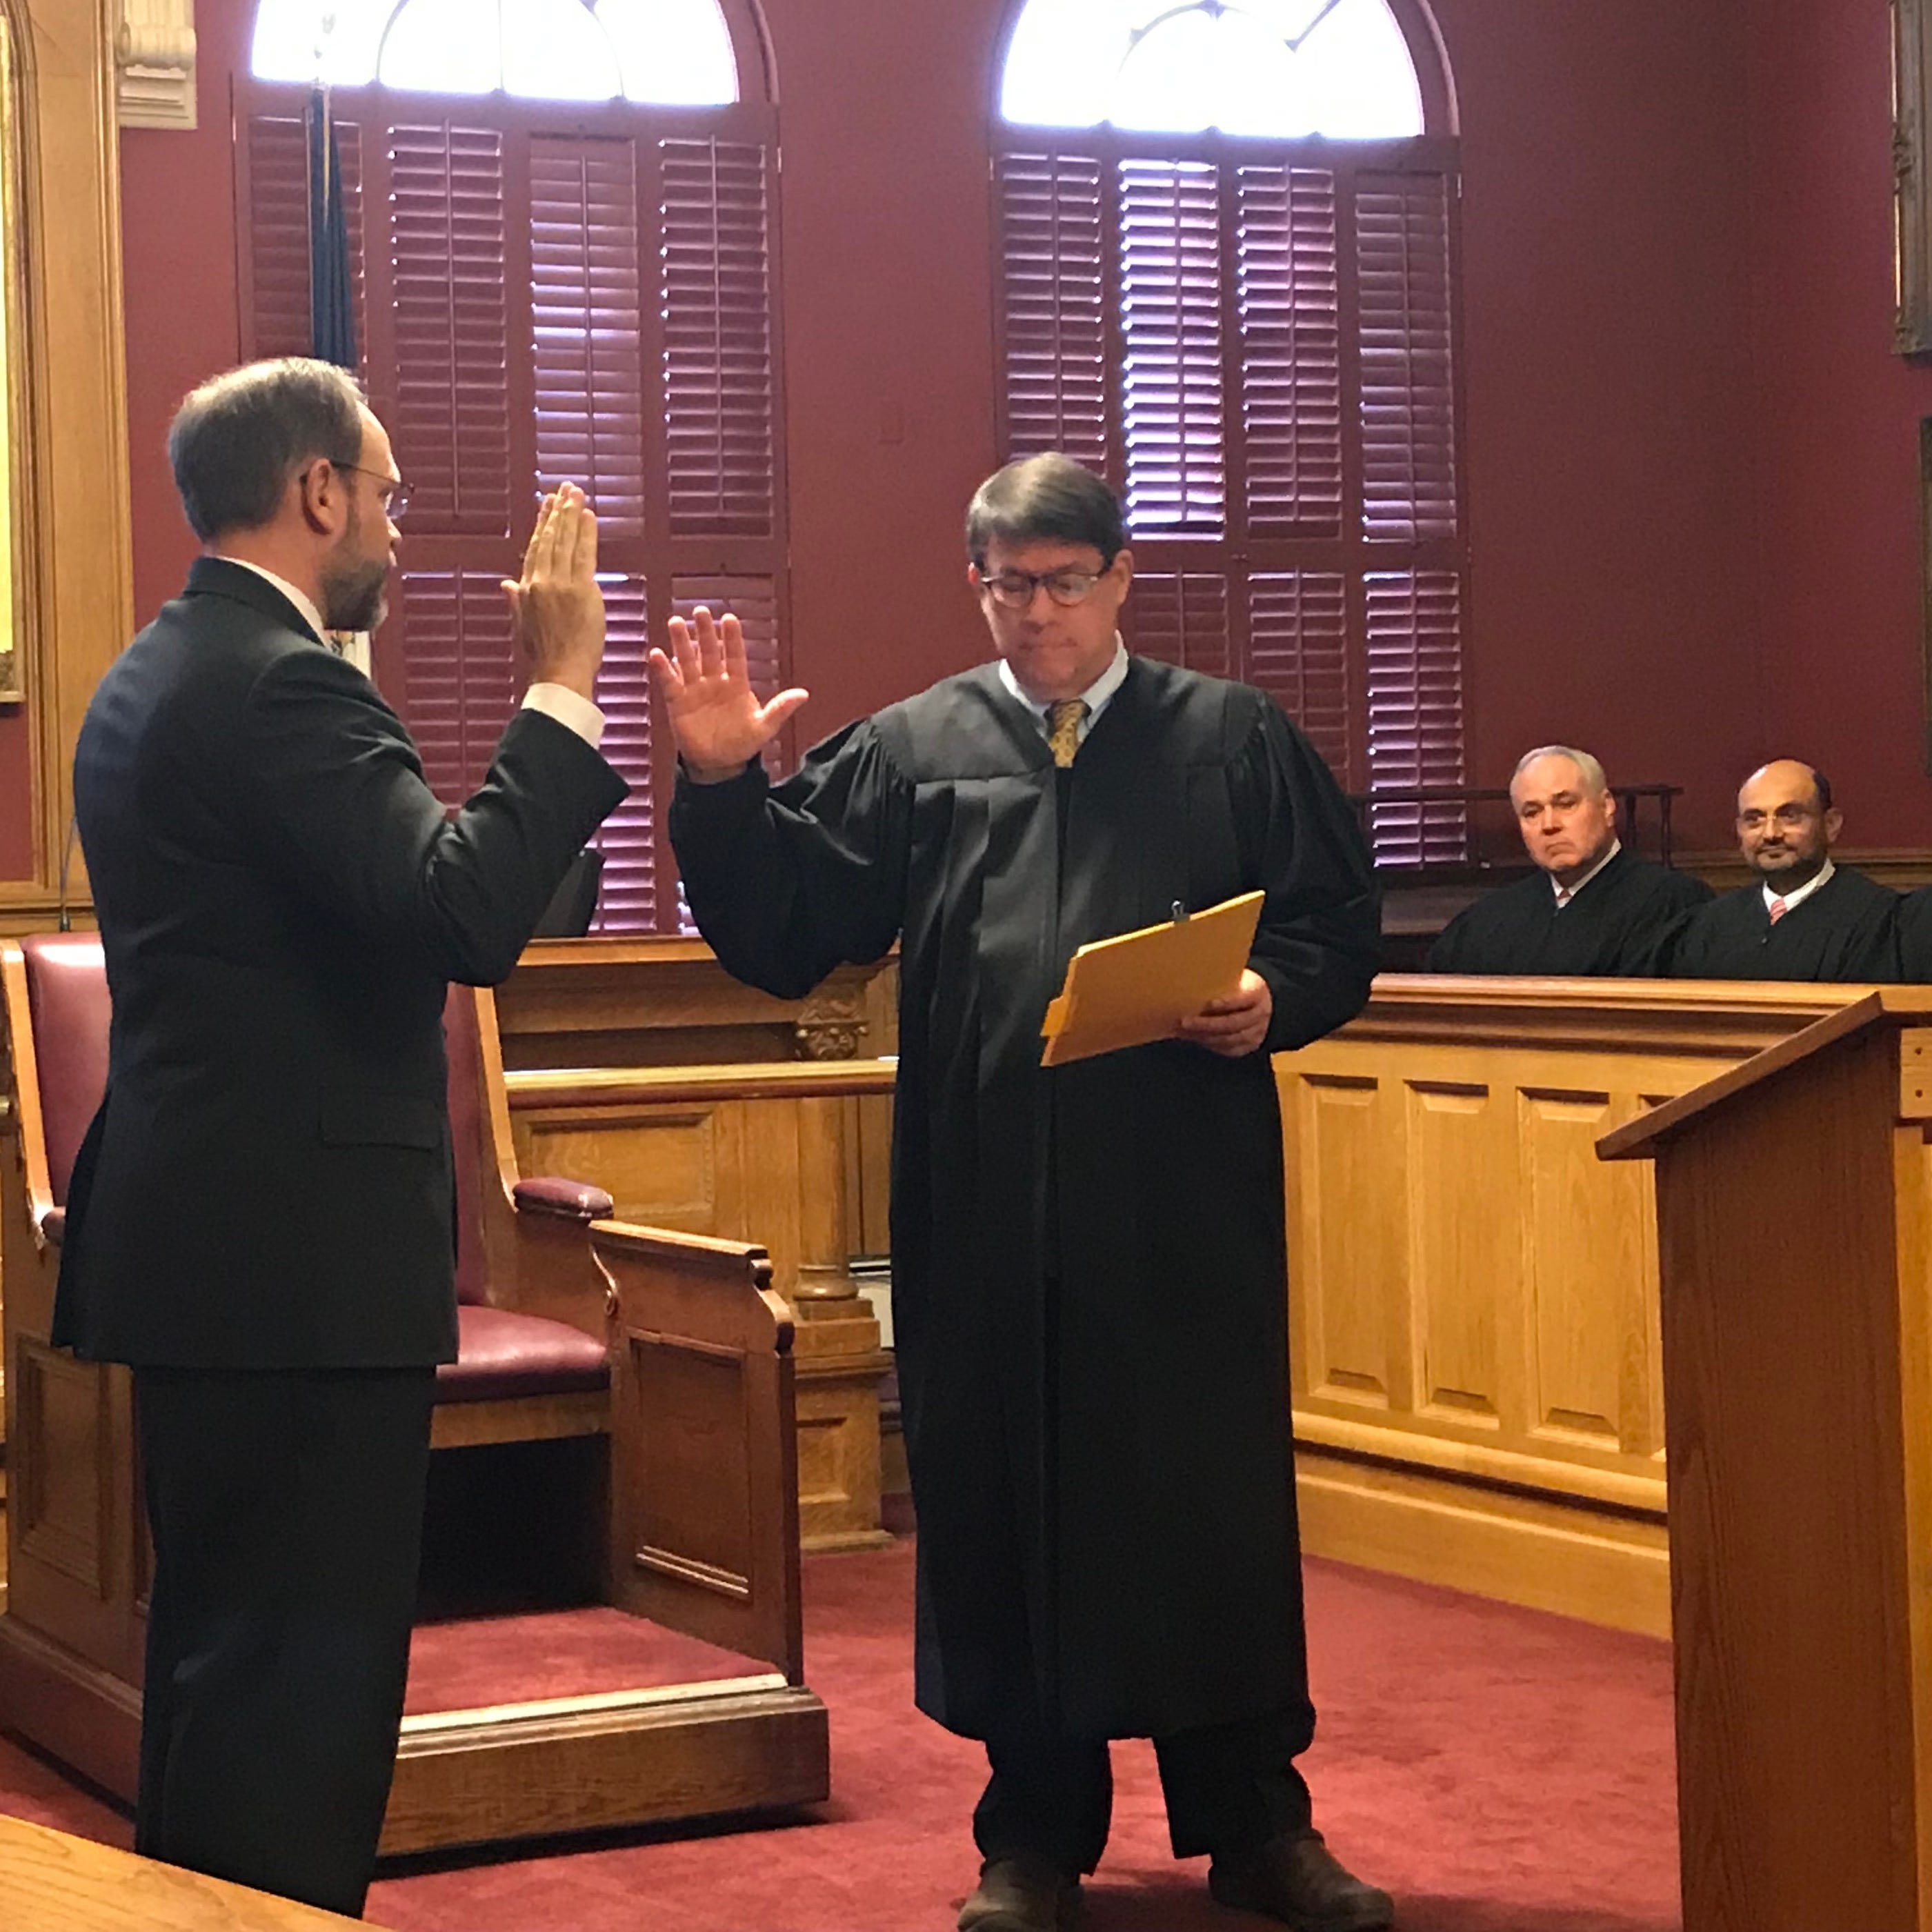 Paul Dryer replaces Judge Victor V. Ludwig, who retired at the end of 2018